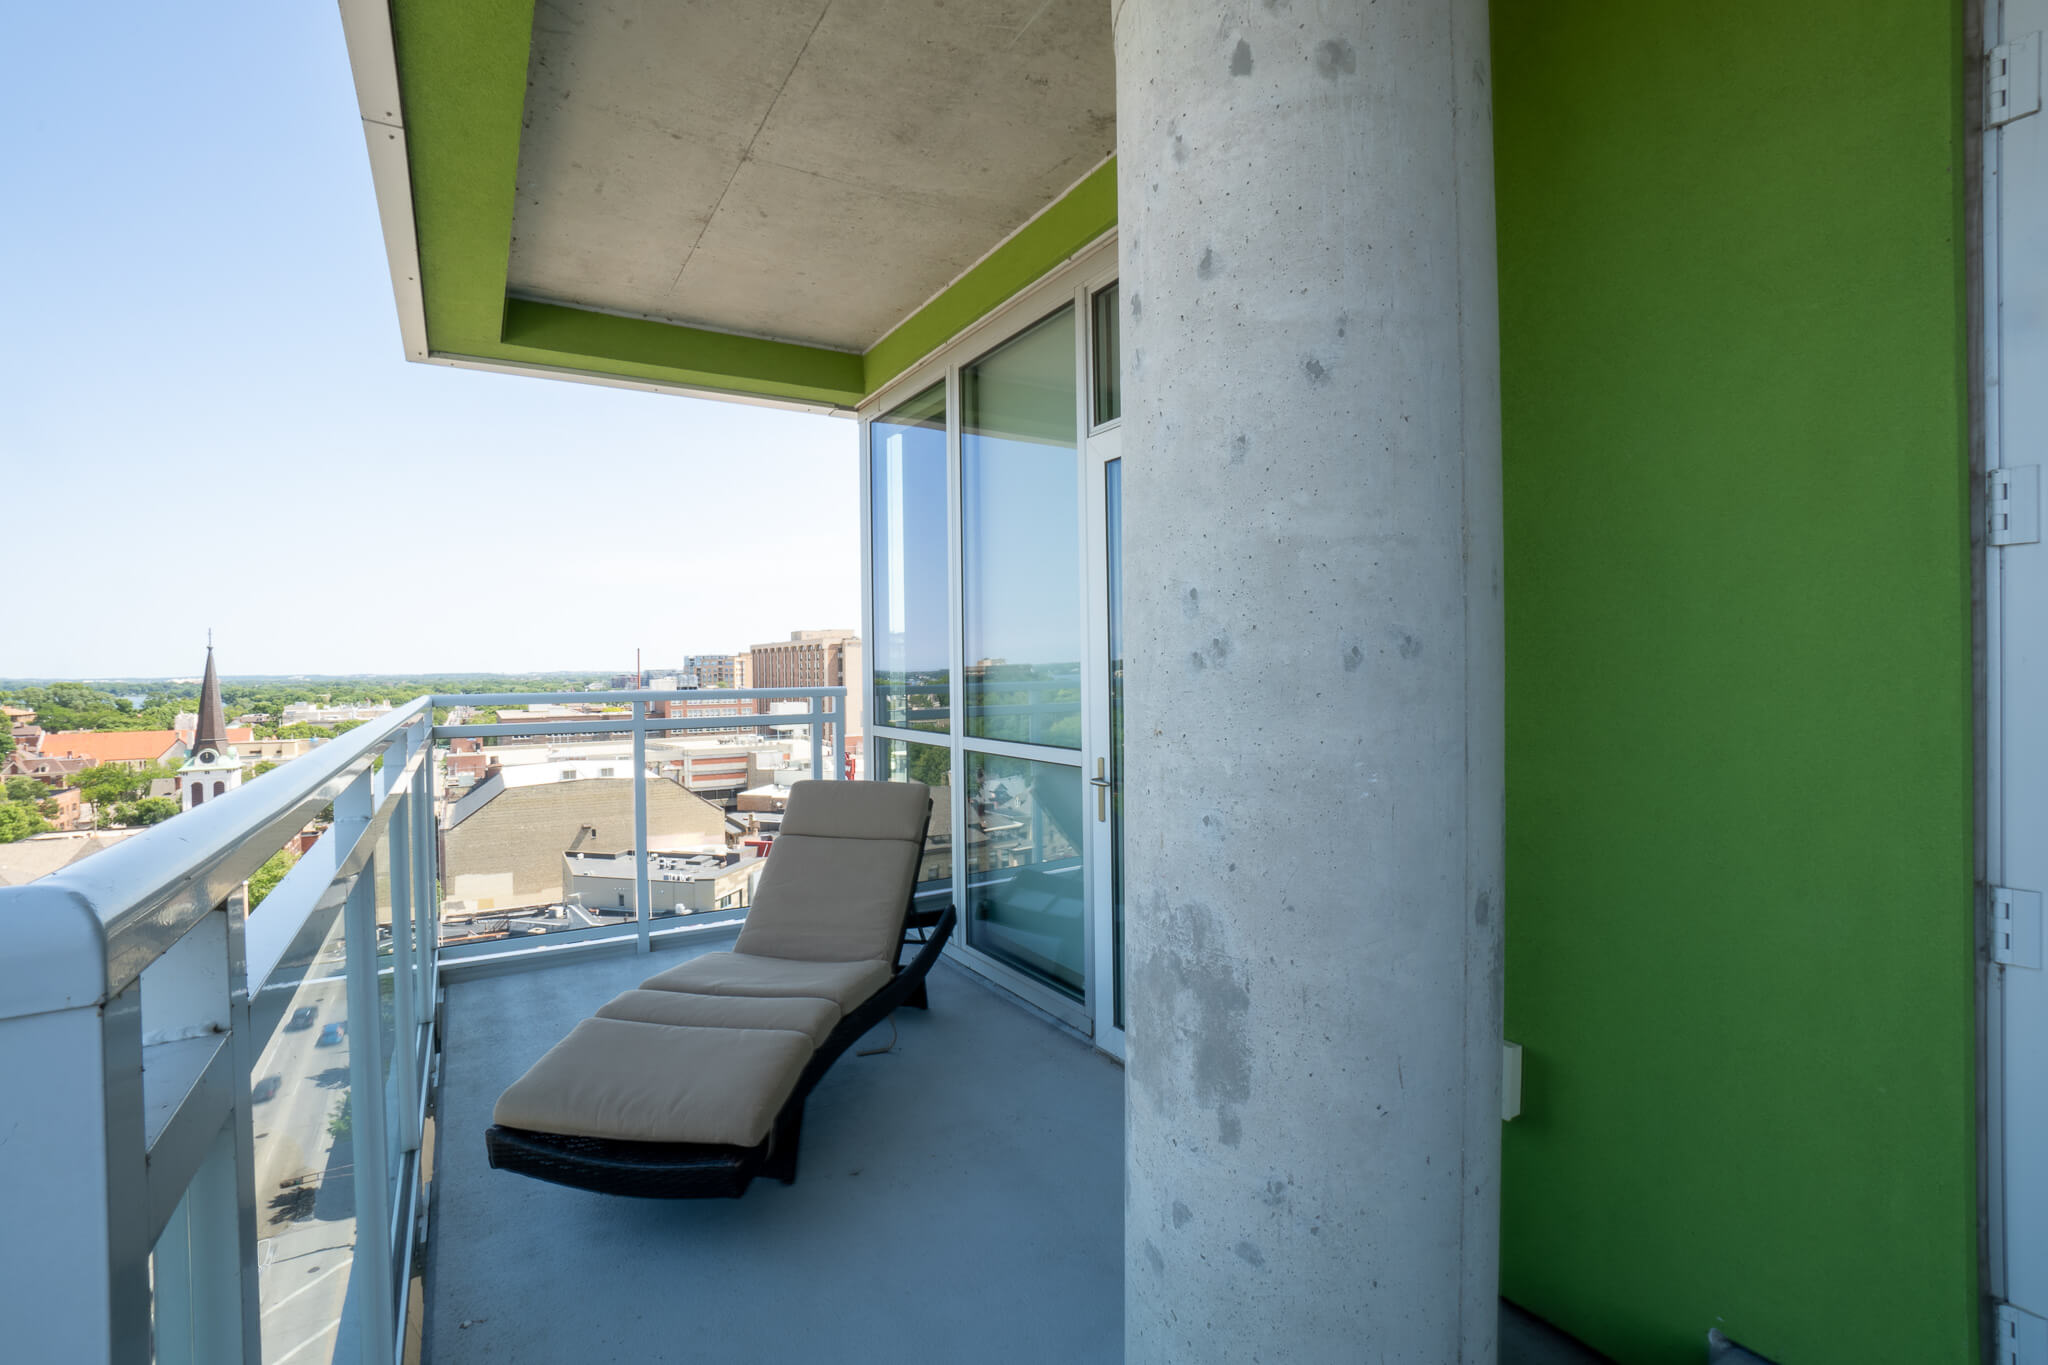 lounge-chair-on-private-balcony